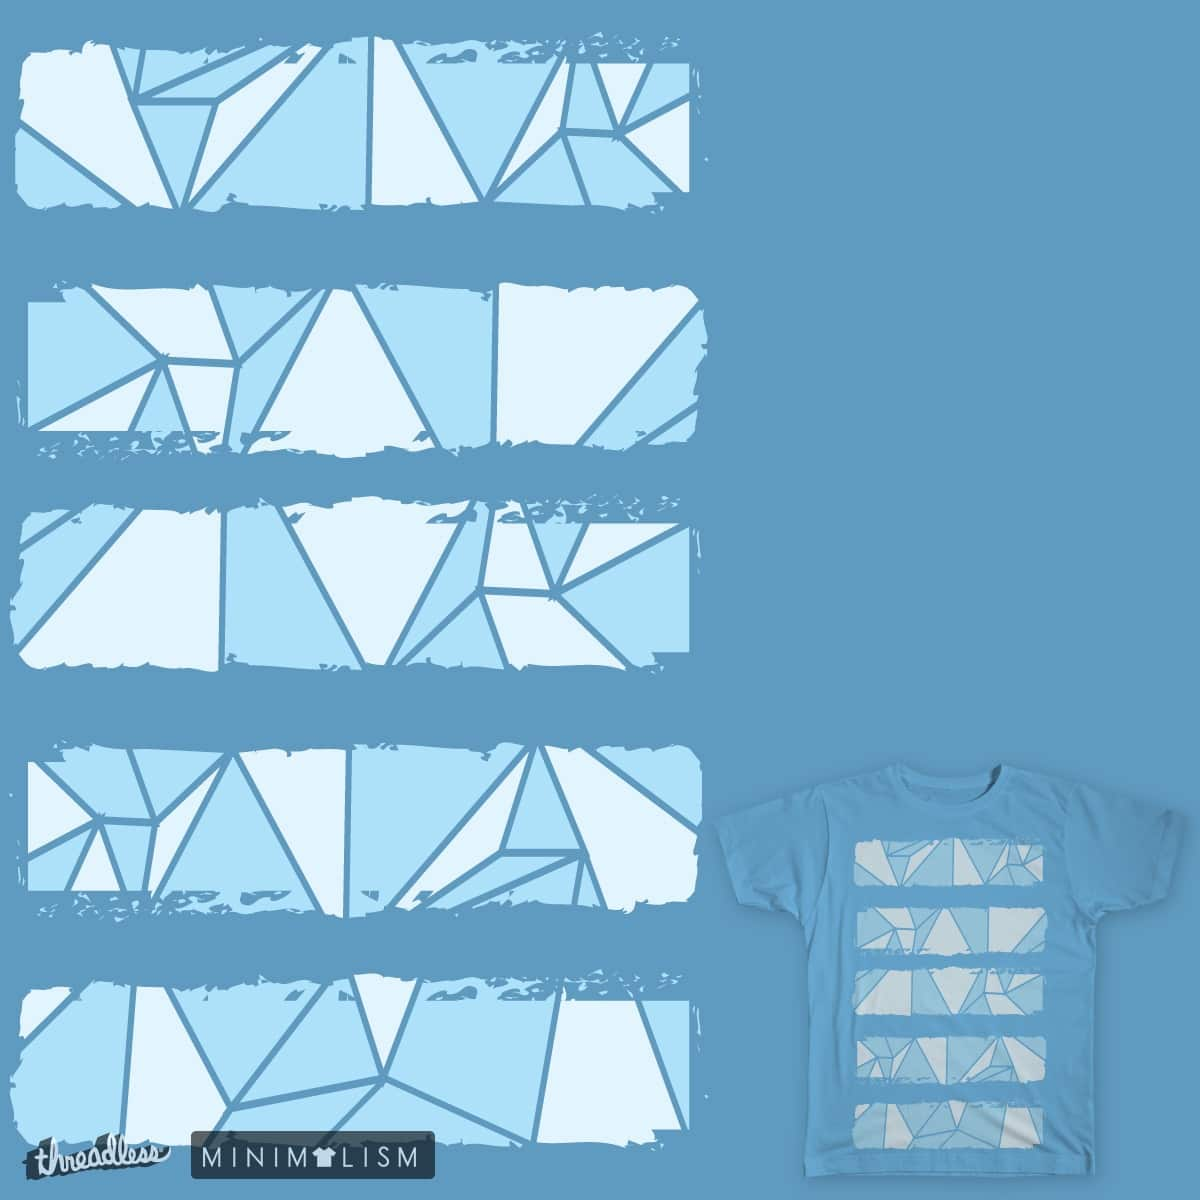 Diamond In The Rough by daletheskater on Threadless